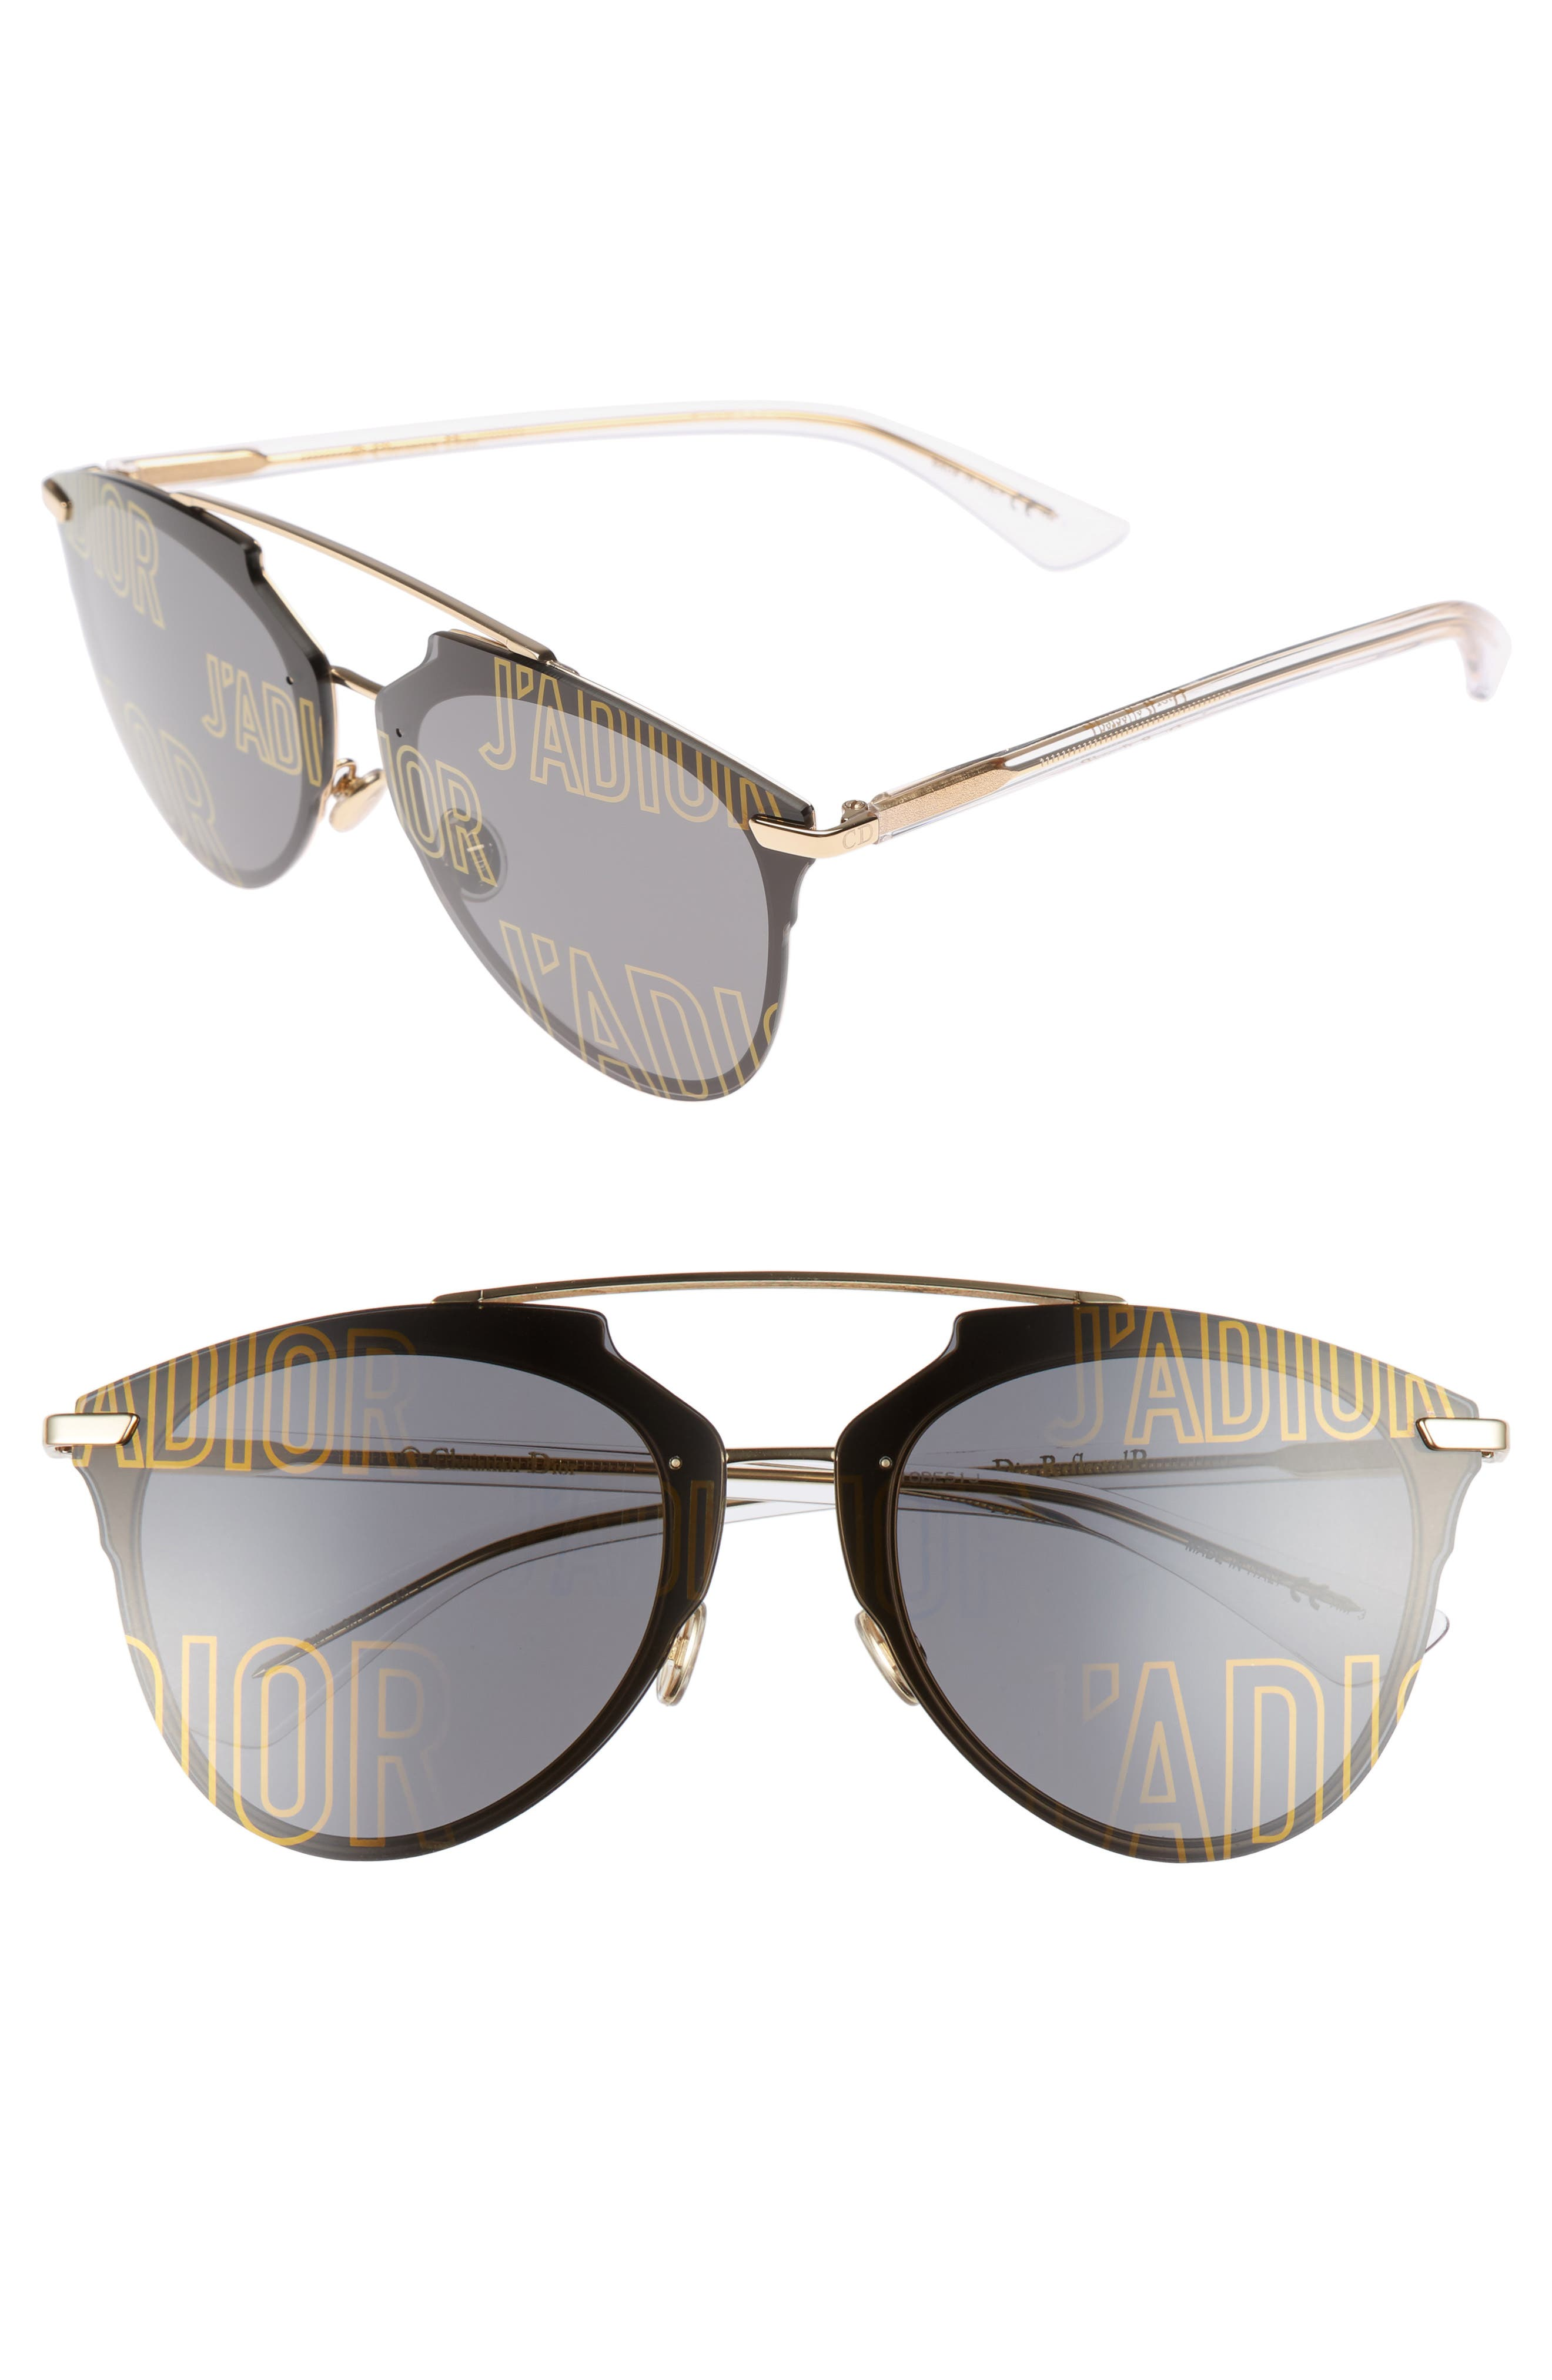 Main Image - Dior Reflected Prism 63mm Oversize Mirrored Brow Bar Sunglasses